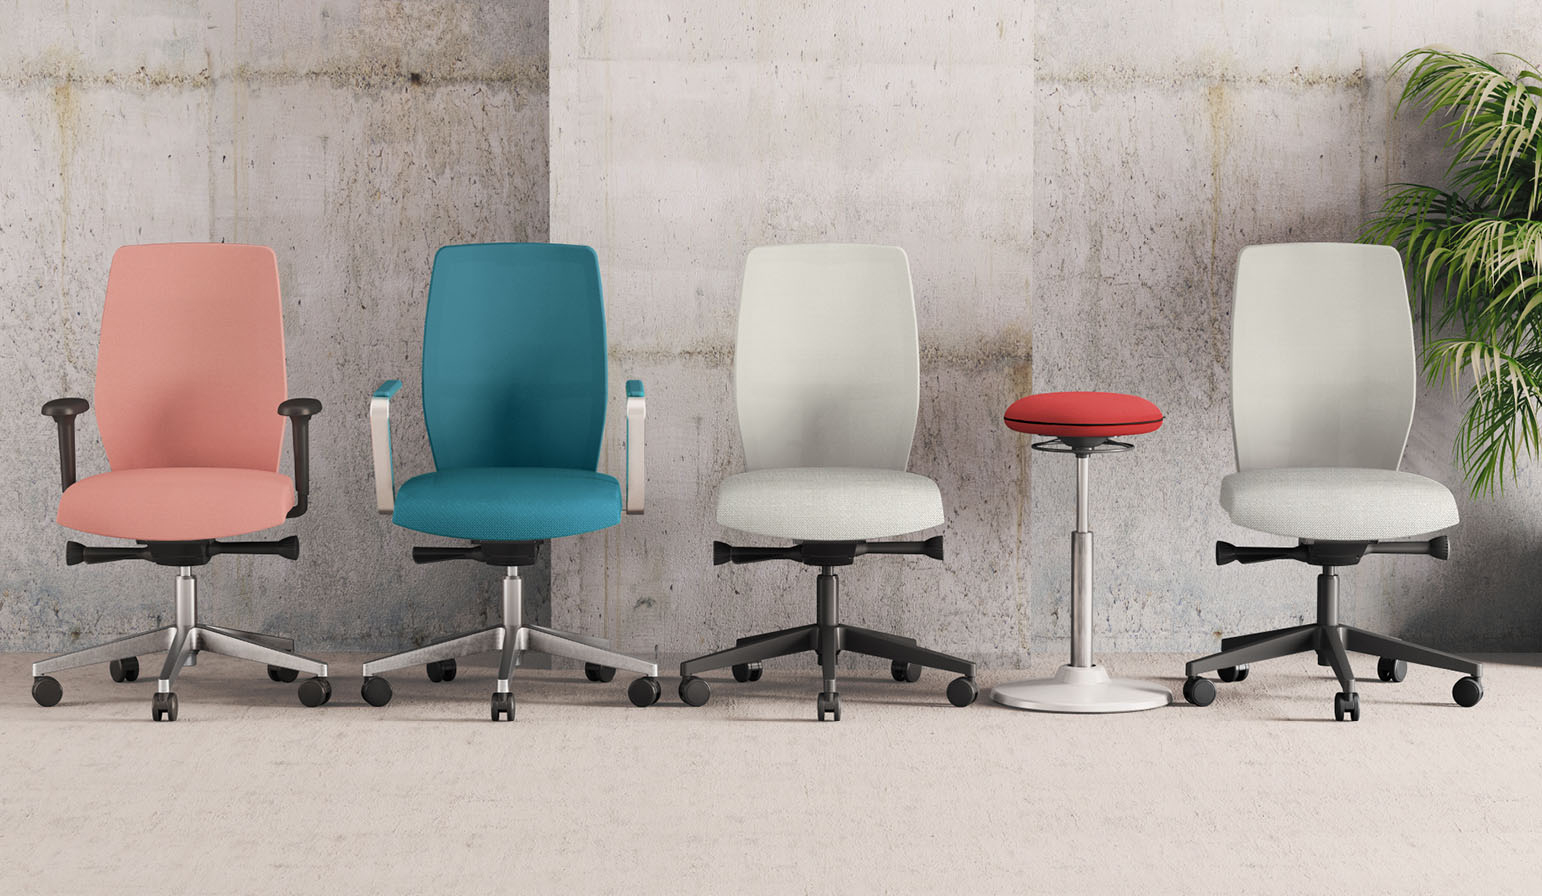 Savo Soul - free-float office chair